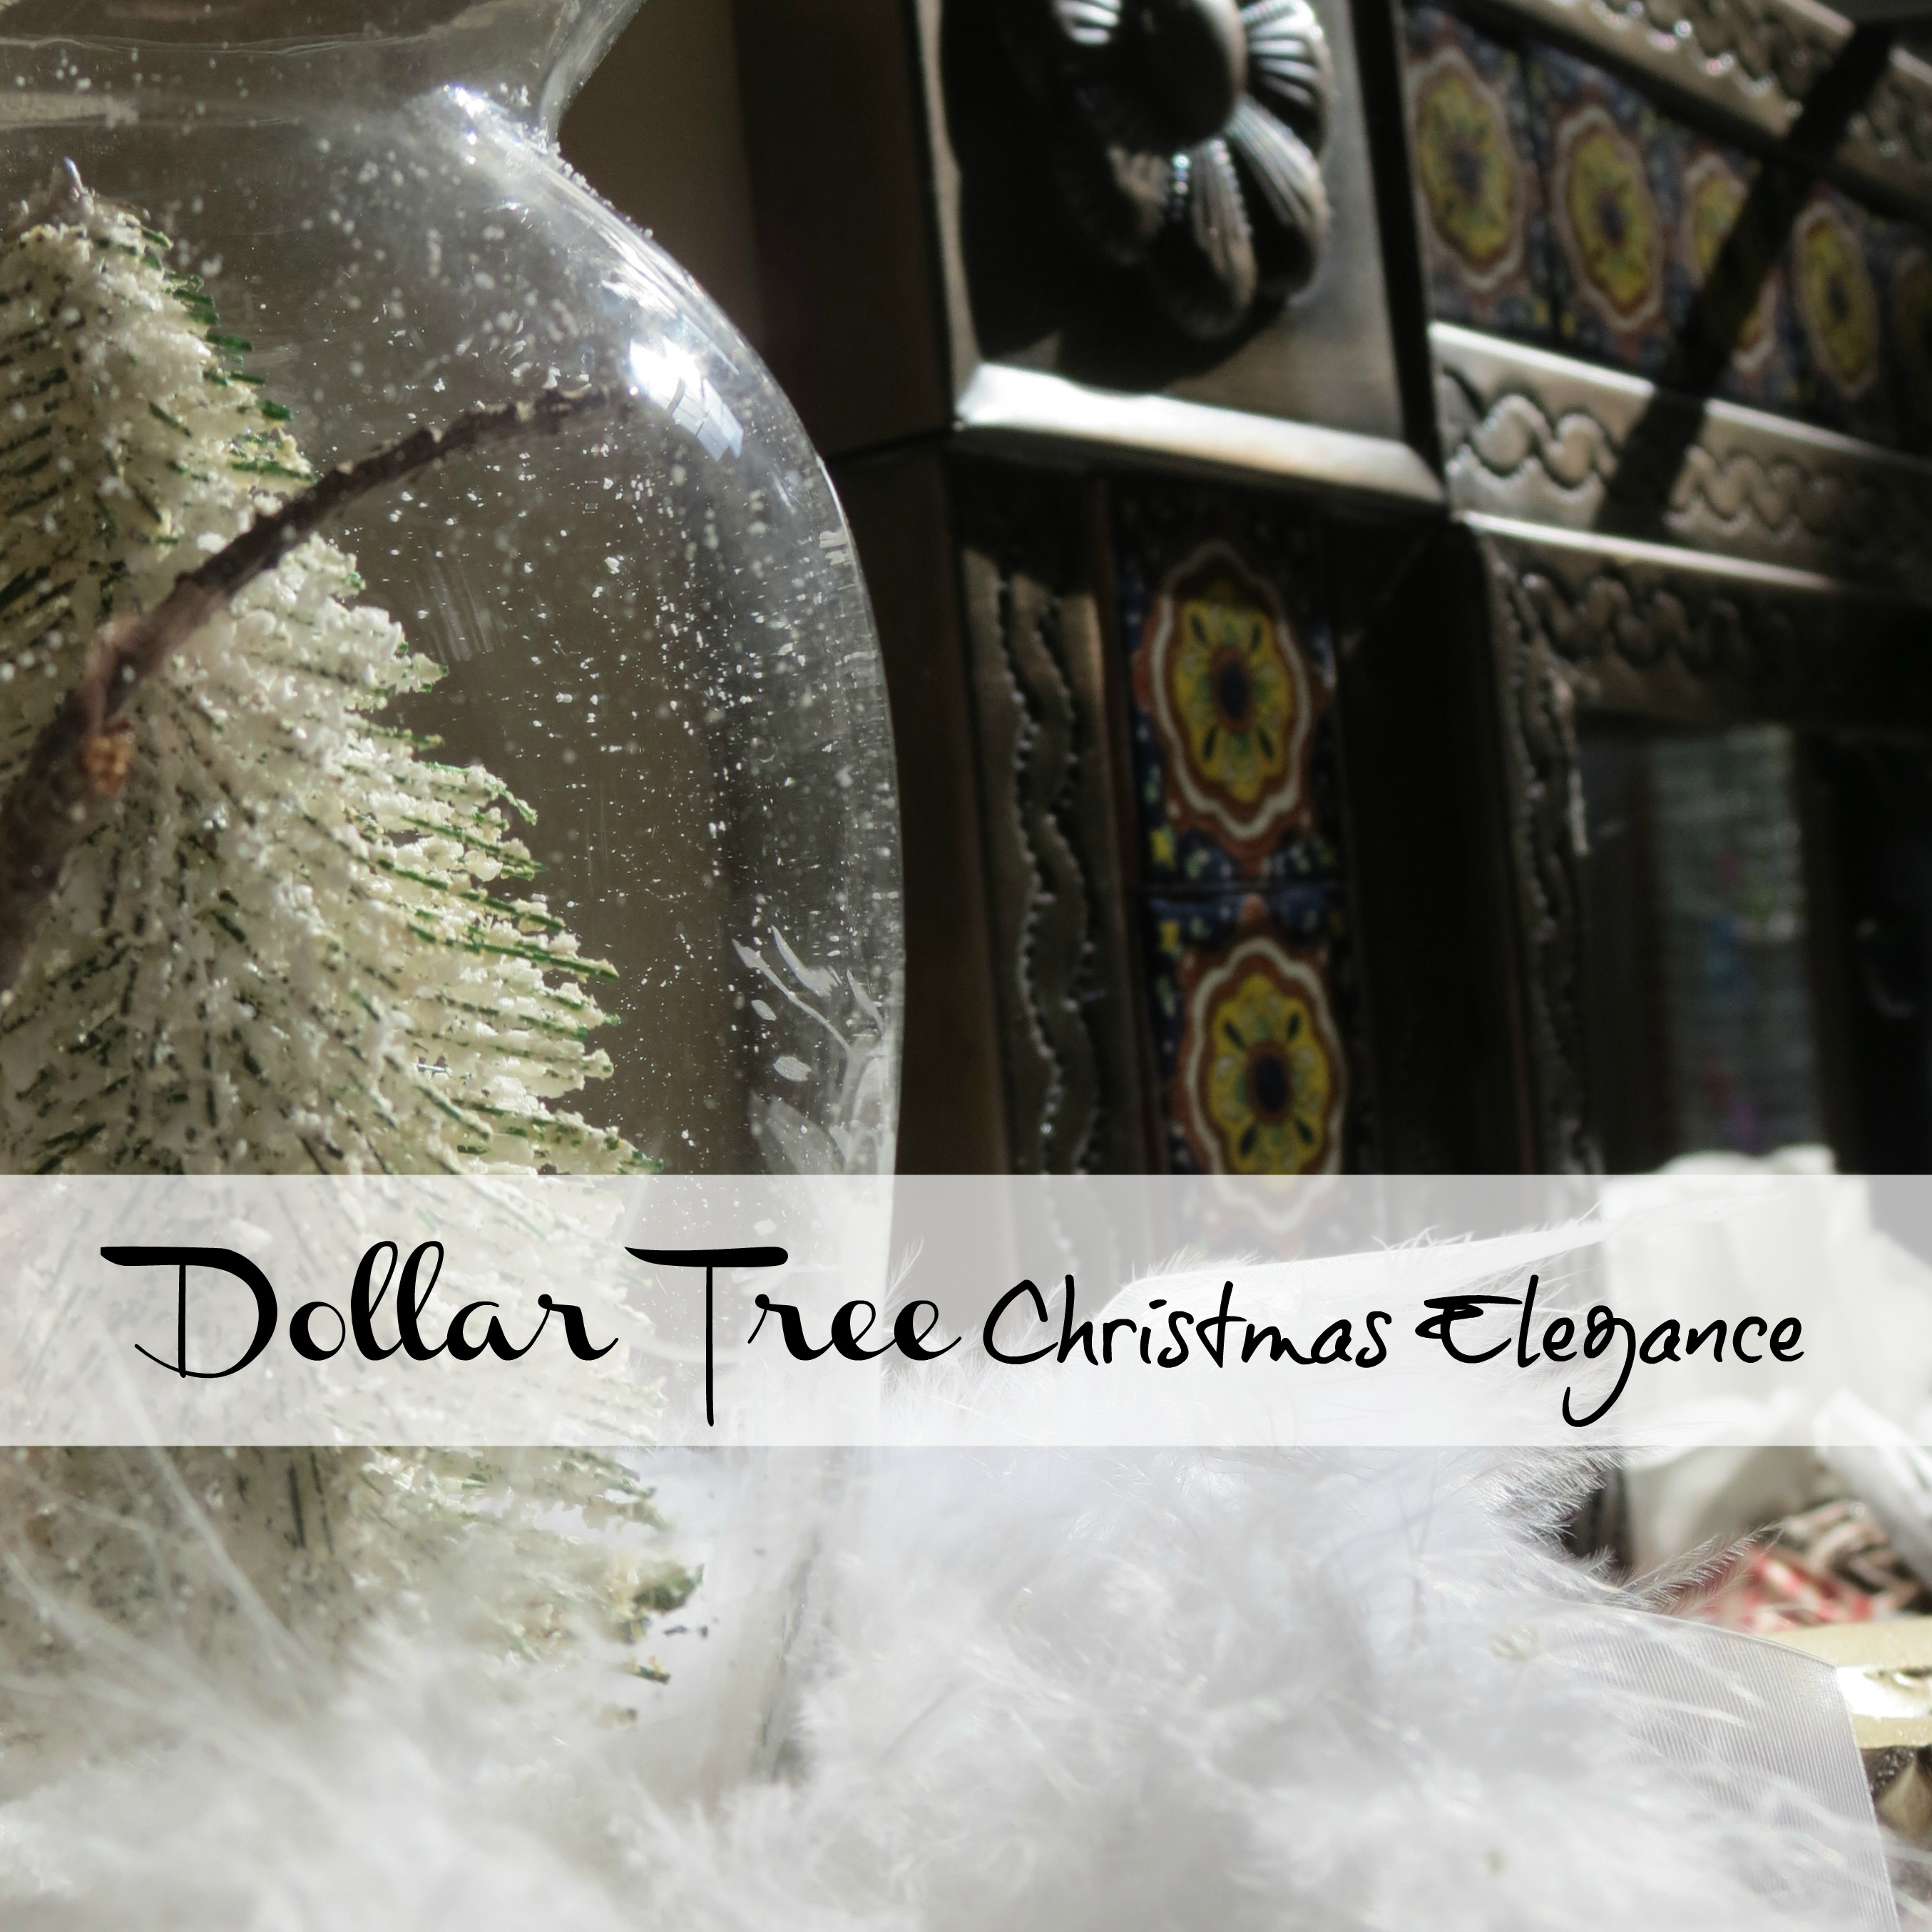 Dollar Tree Christmas decor and decorating